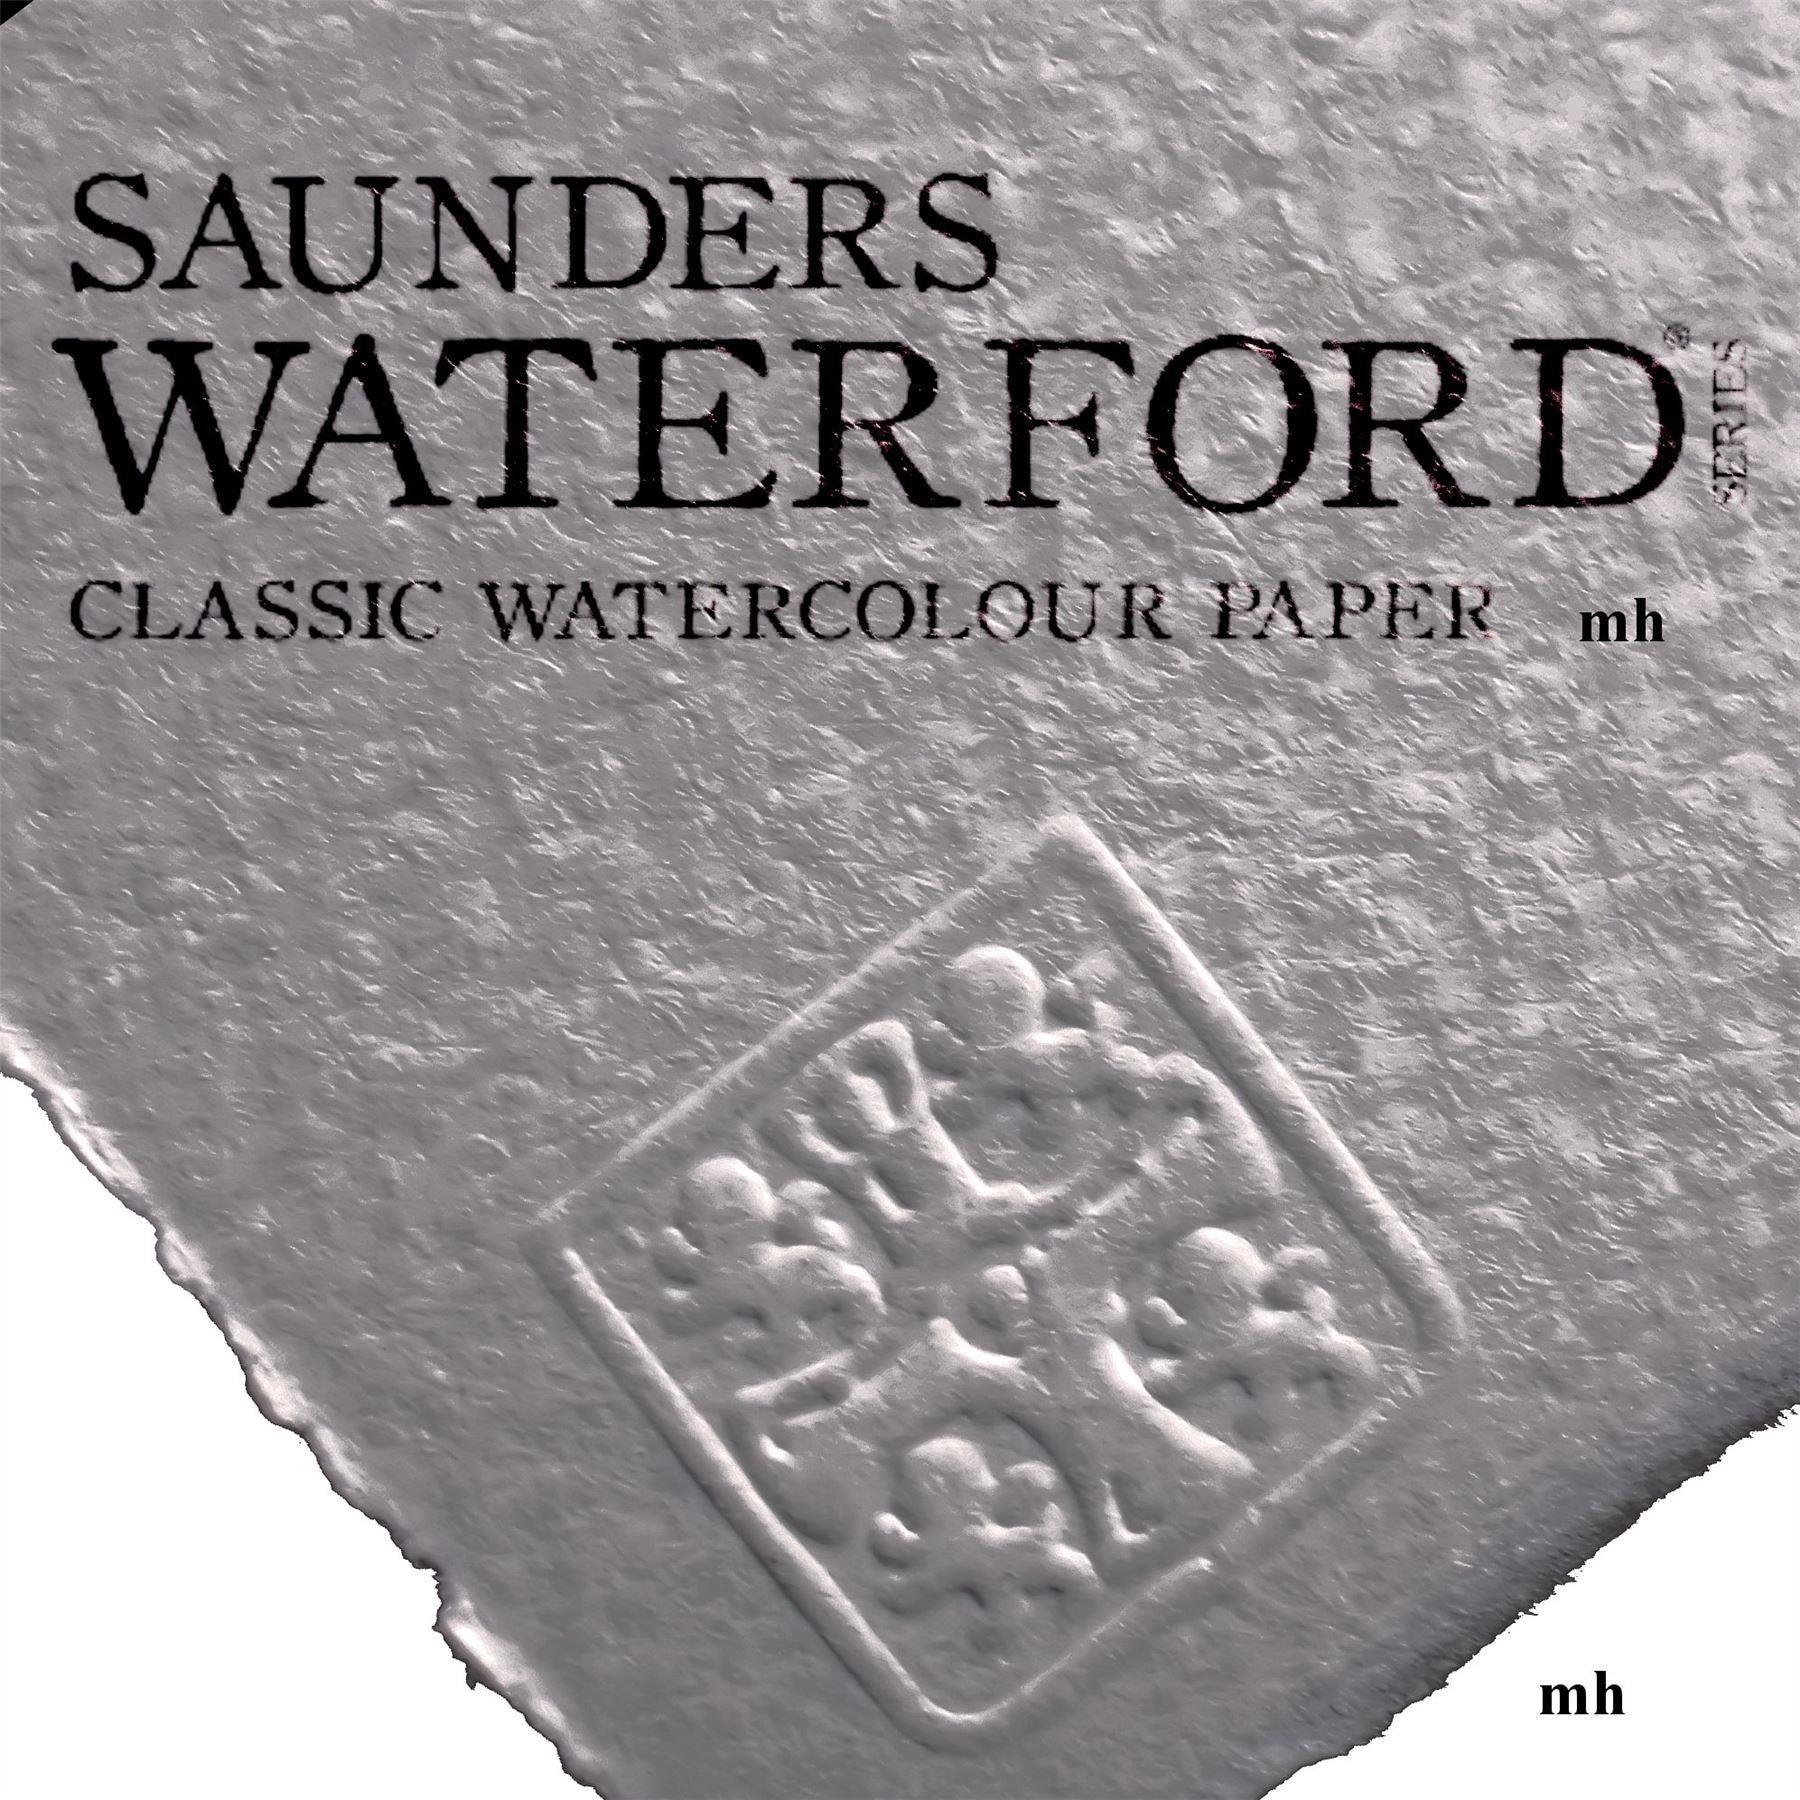 """Saunders Waterford 22"""" x 15"""", 2 sheets 100% cotton white Hot Press 190gsm(90lbs) watercolour paper"""